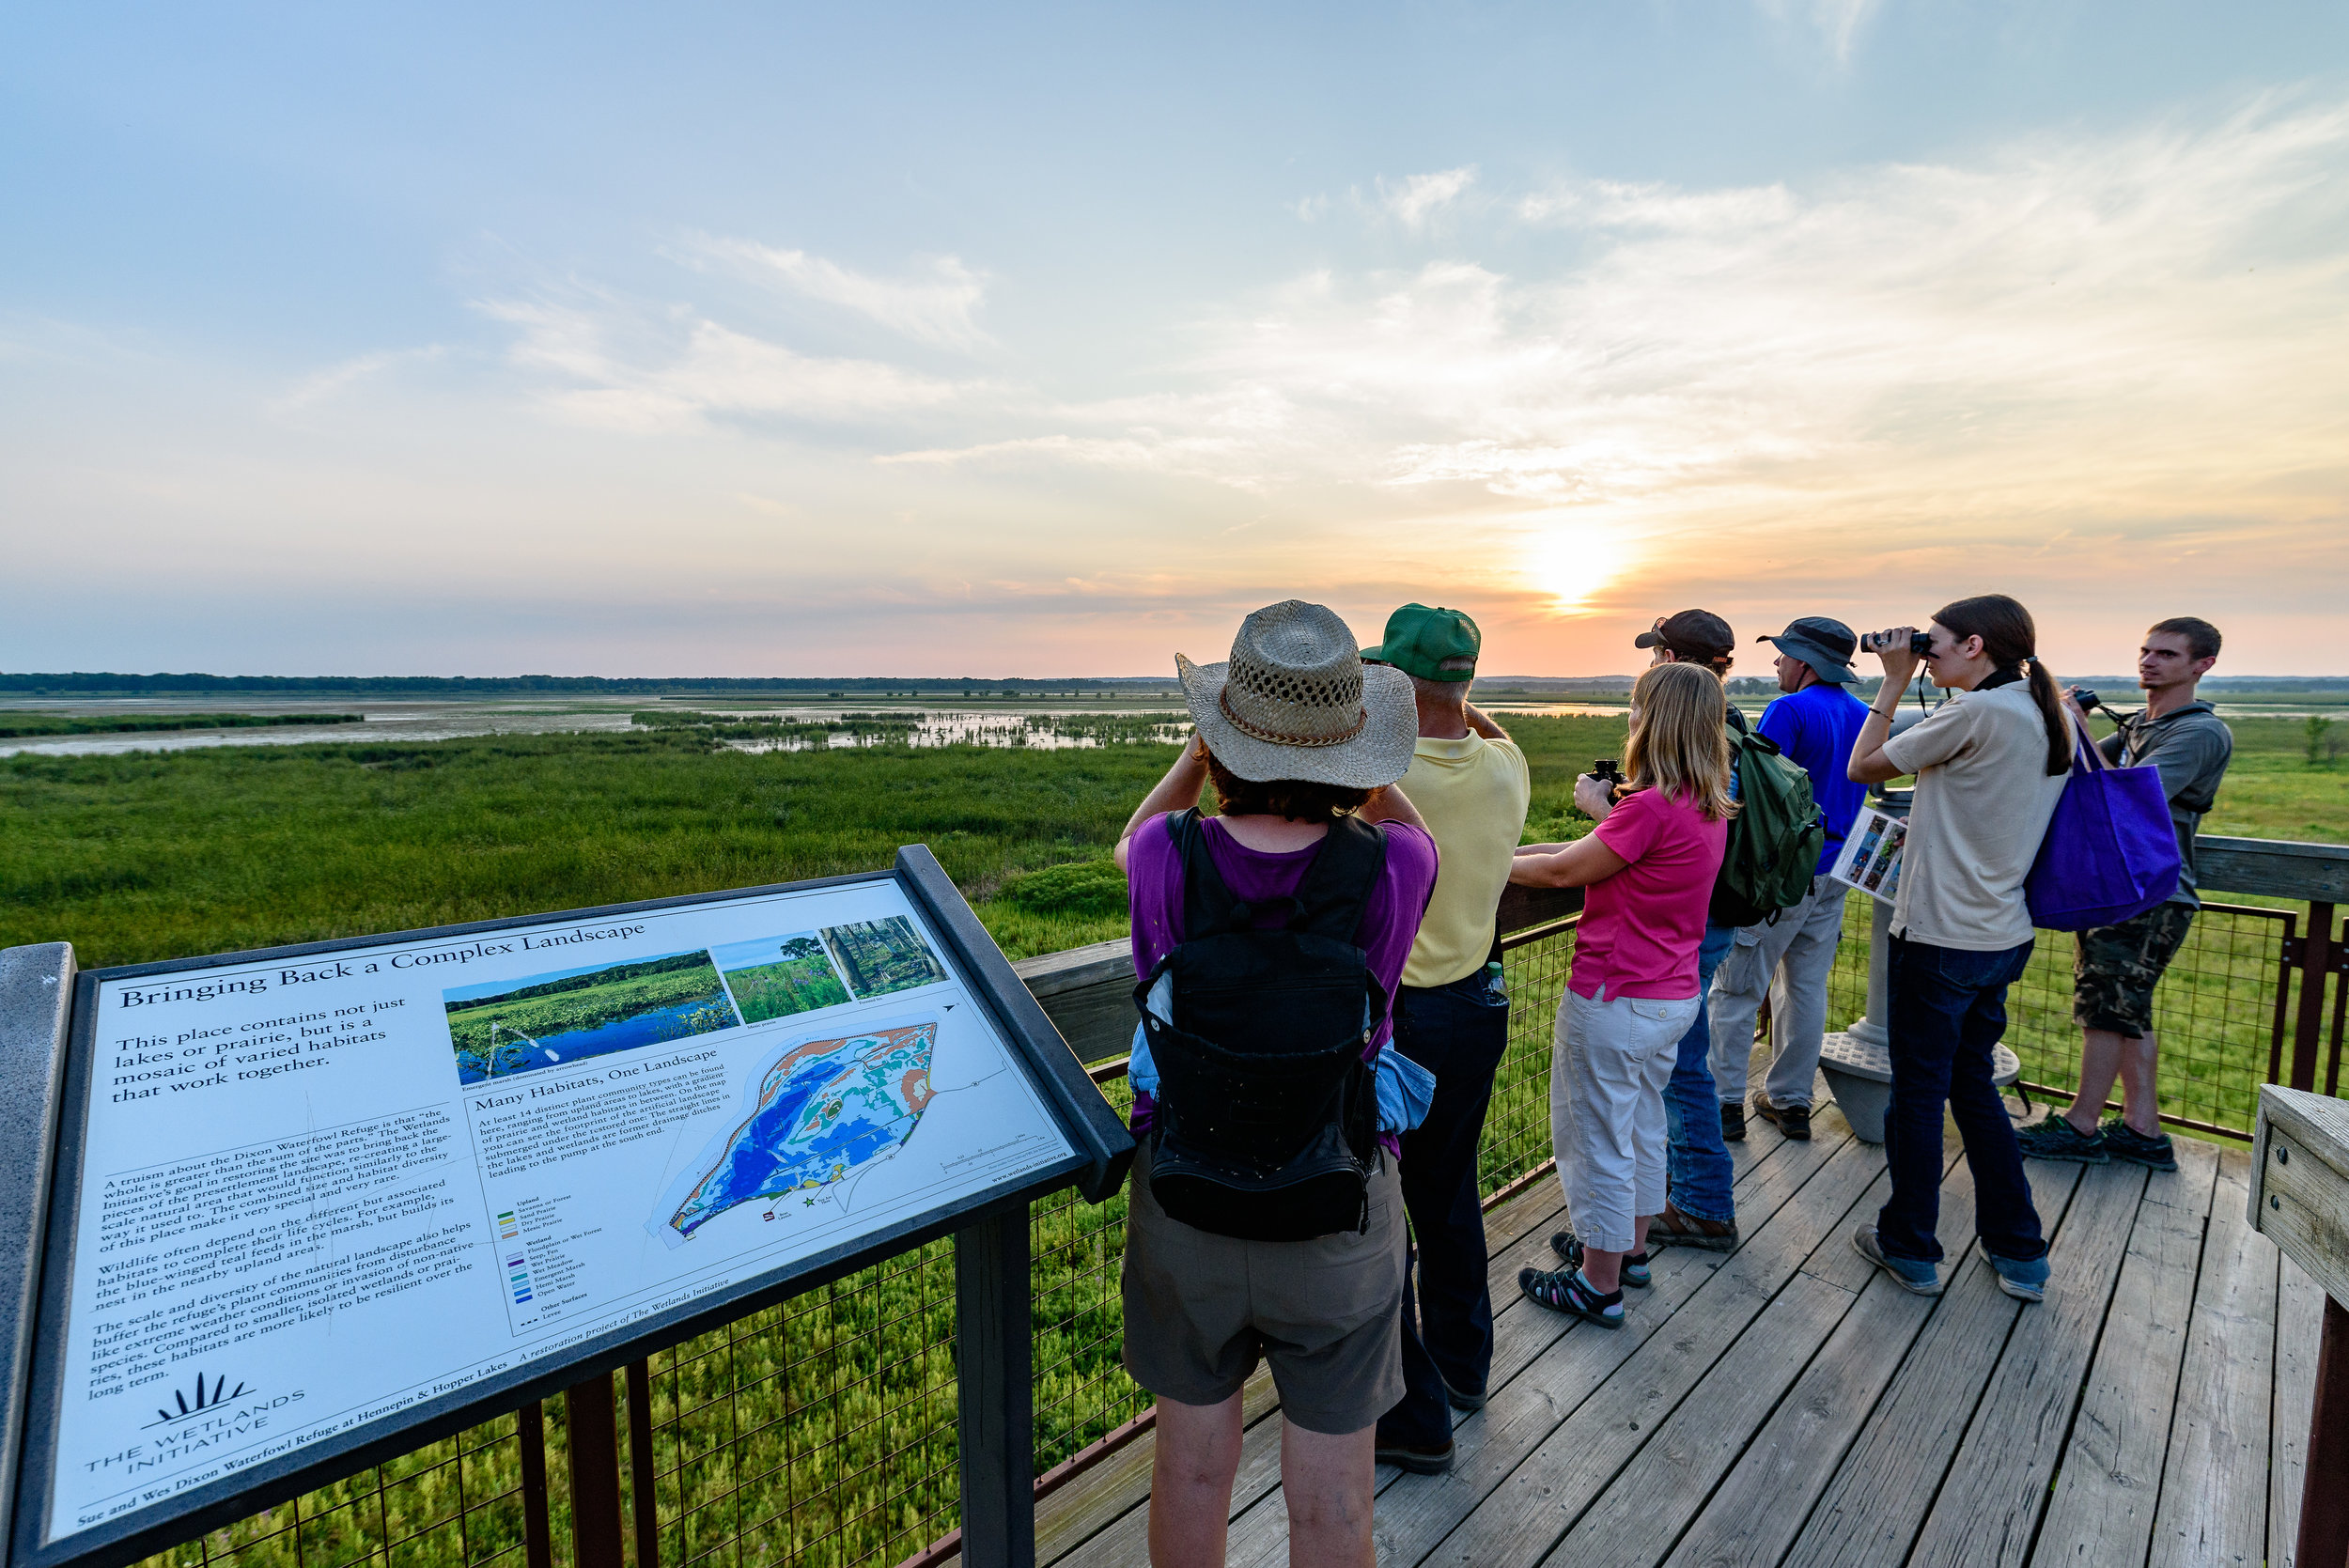 A walk to look for secretive marsh birds from the observation tower and along the boardwalk was one of two Friday dusk surveys. Photo by Rafi Wilkinson.